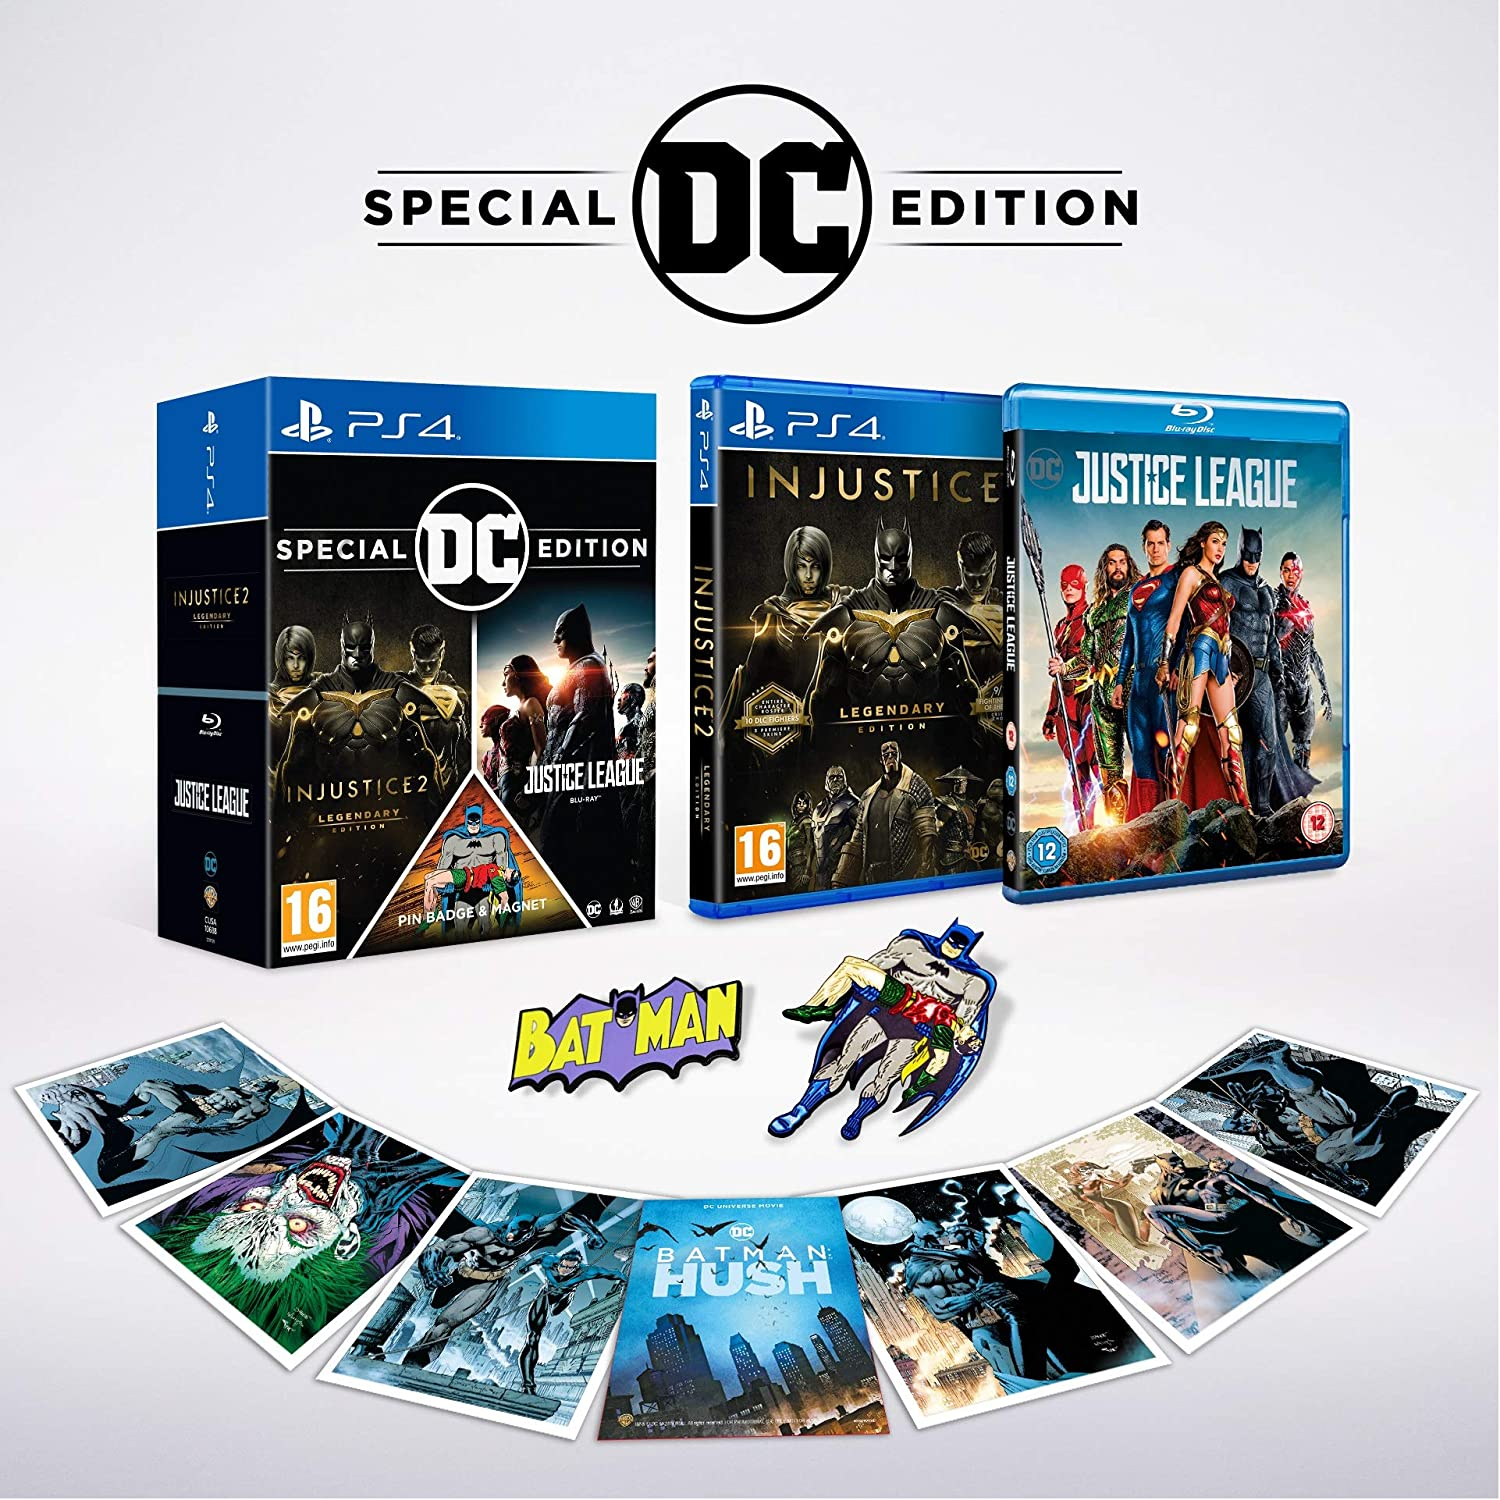 Injustice 2 Legendary Edition (Special DC Edition)